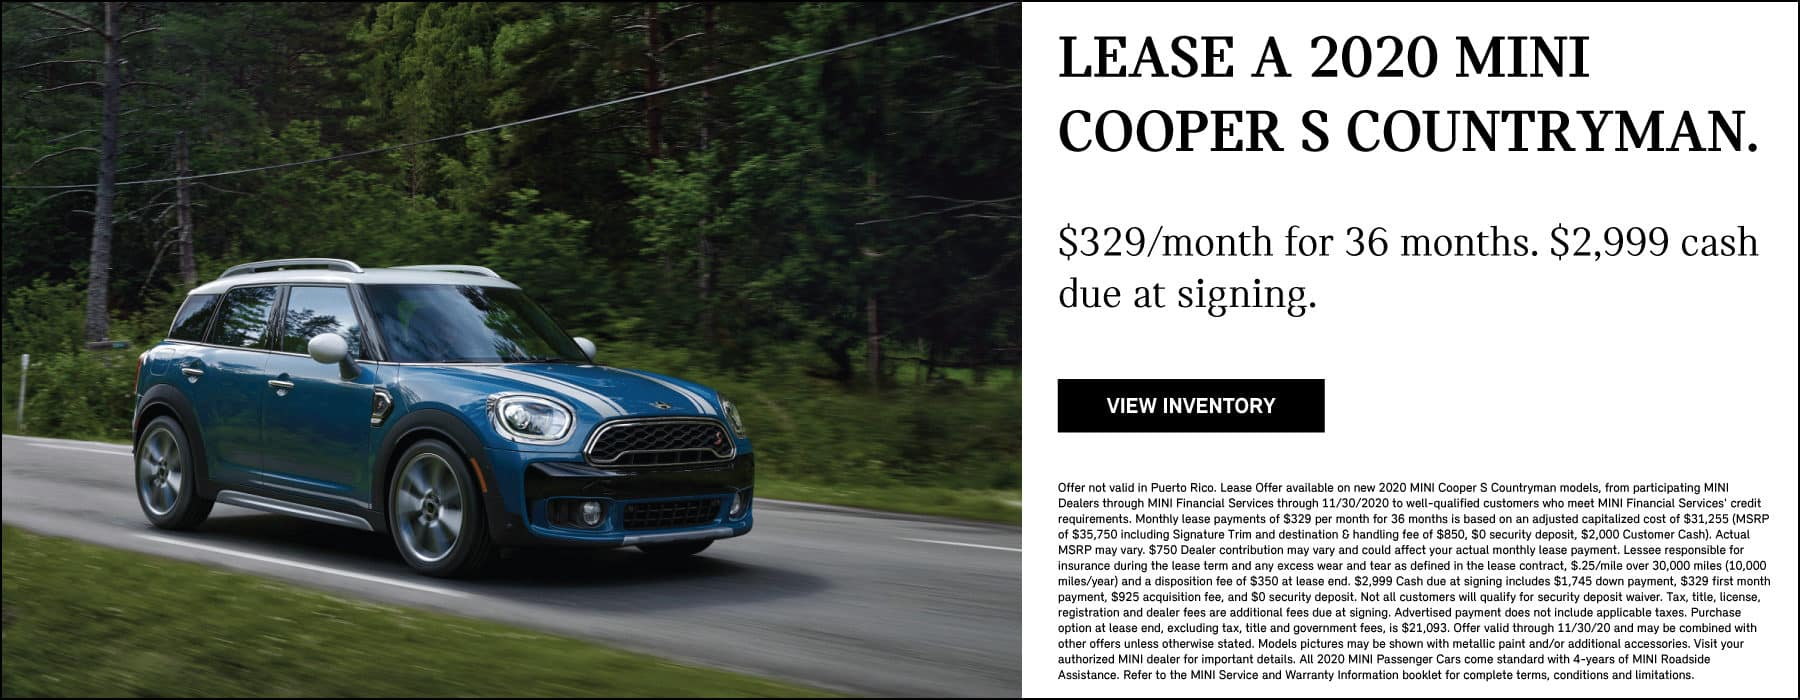 LEASE A 2020 MINI COOPER S COUNTRYMAN FOR $329 A MONTH. SEE DEALER FOR COMPLETE DETAILS.